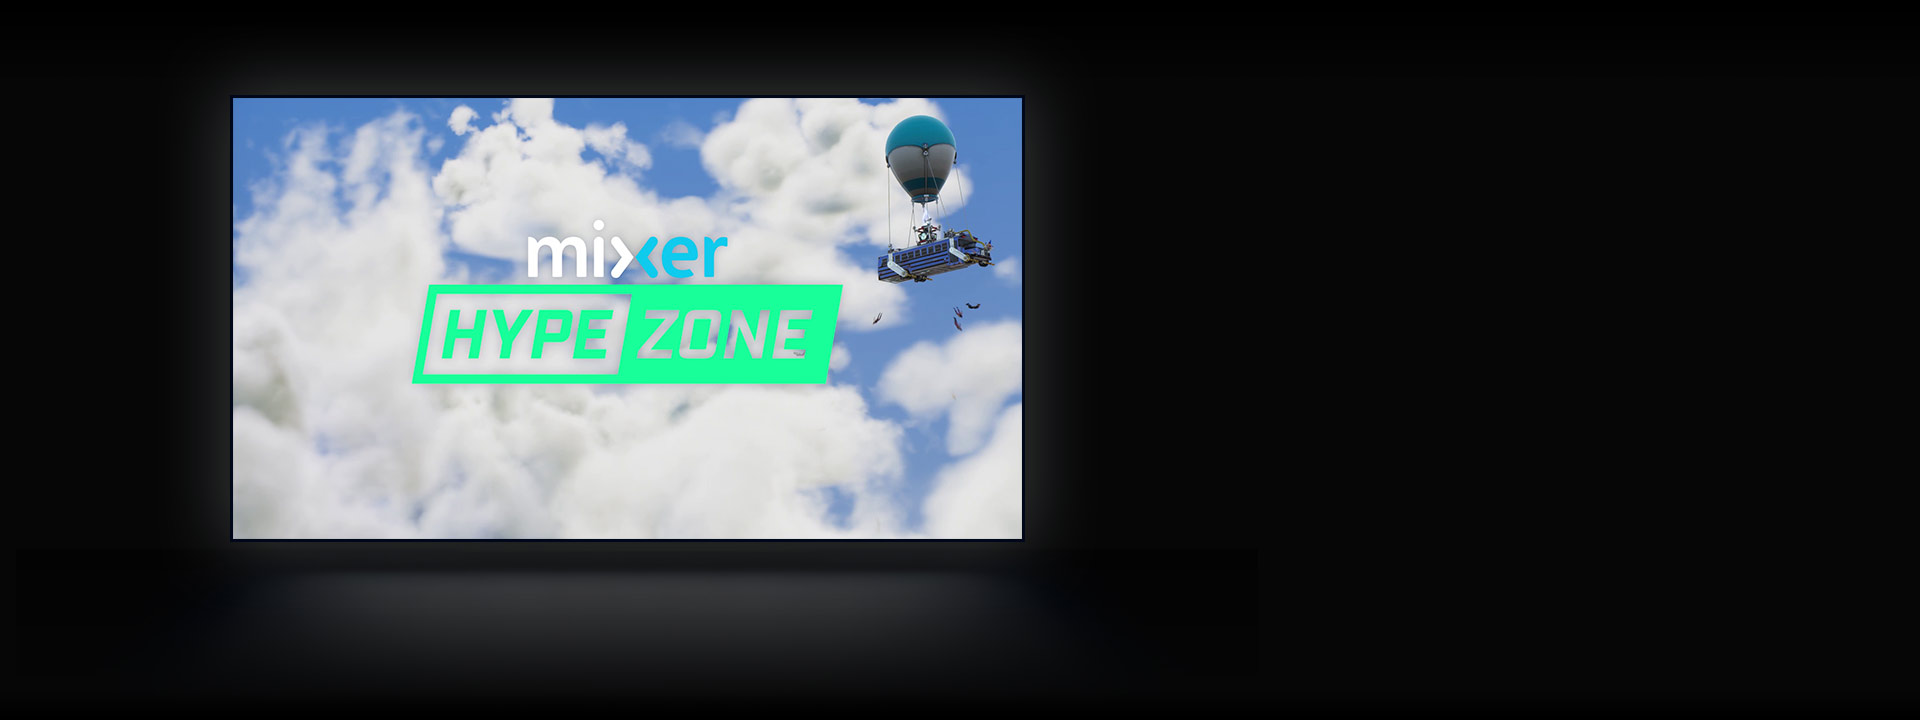 Mixer HypeZone, Fortnite characters jump from a battle bus in the sky